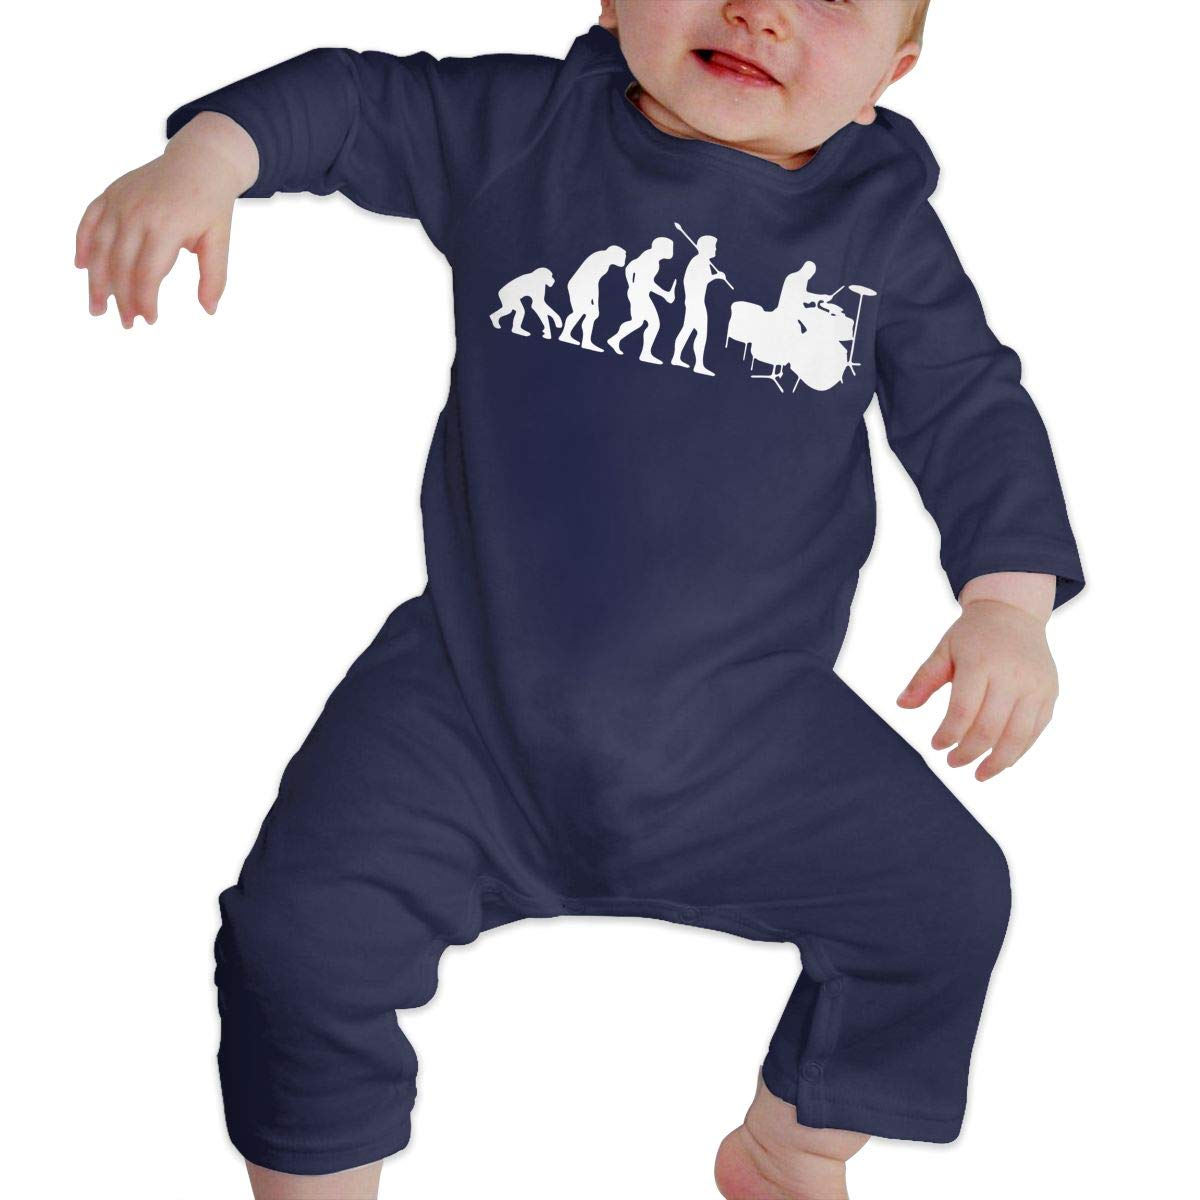 LBJQ8 Drummer Evolution Newborn Kids Baby Boys Organic Cotton Playsuit Outfit Clothes